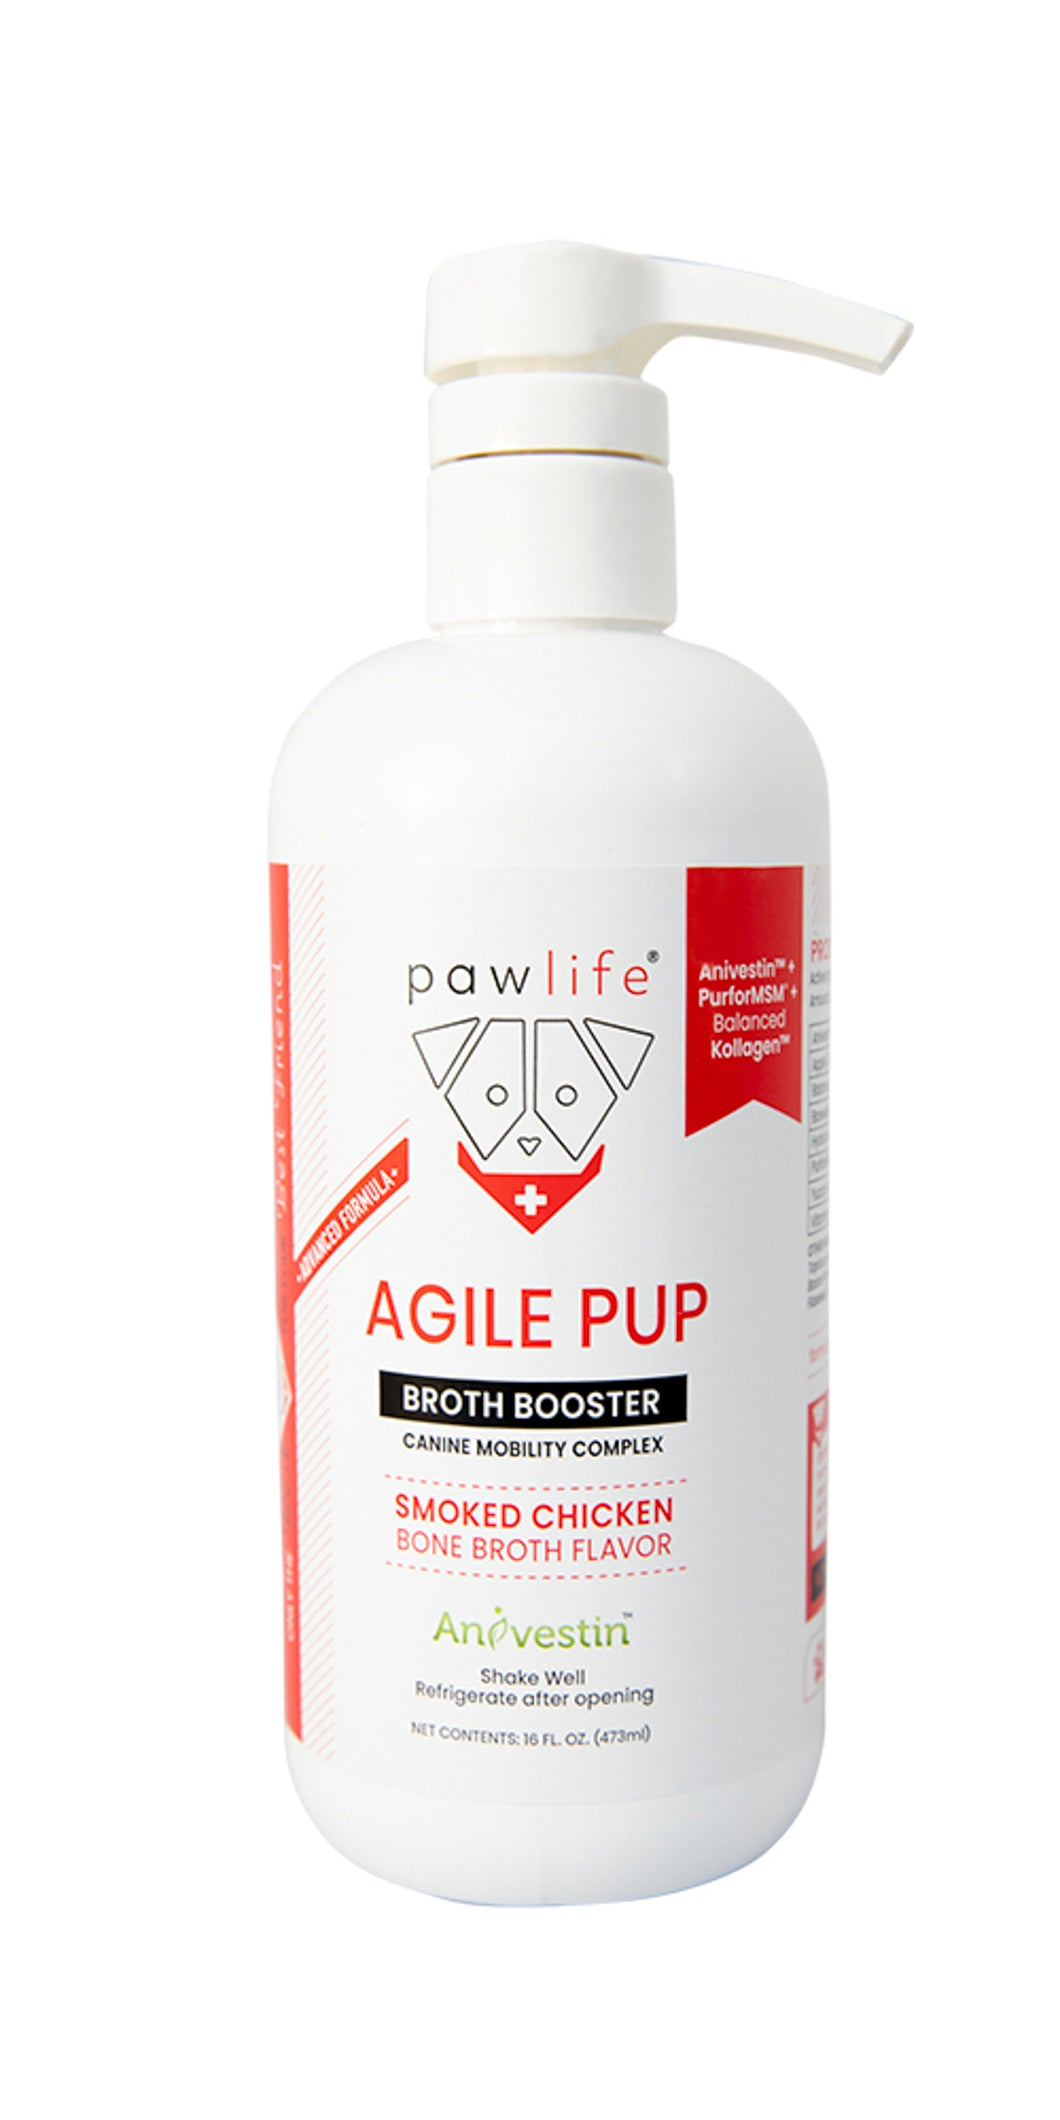 NEW - Agile Pup Advanced Formula - Bone Broth Food Topper, 16oz